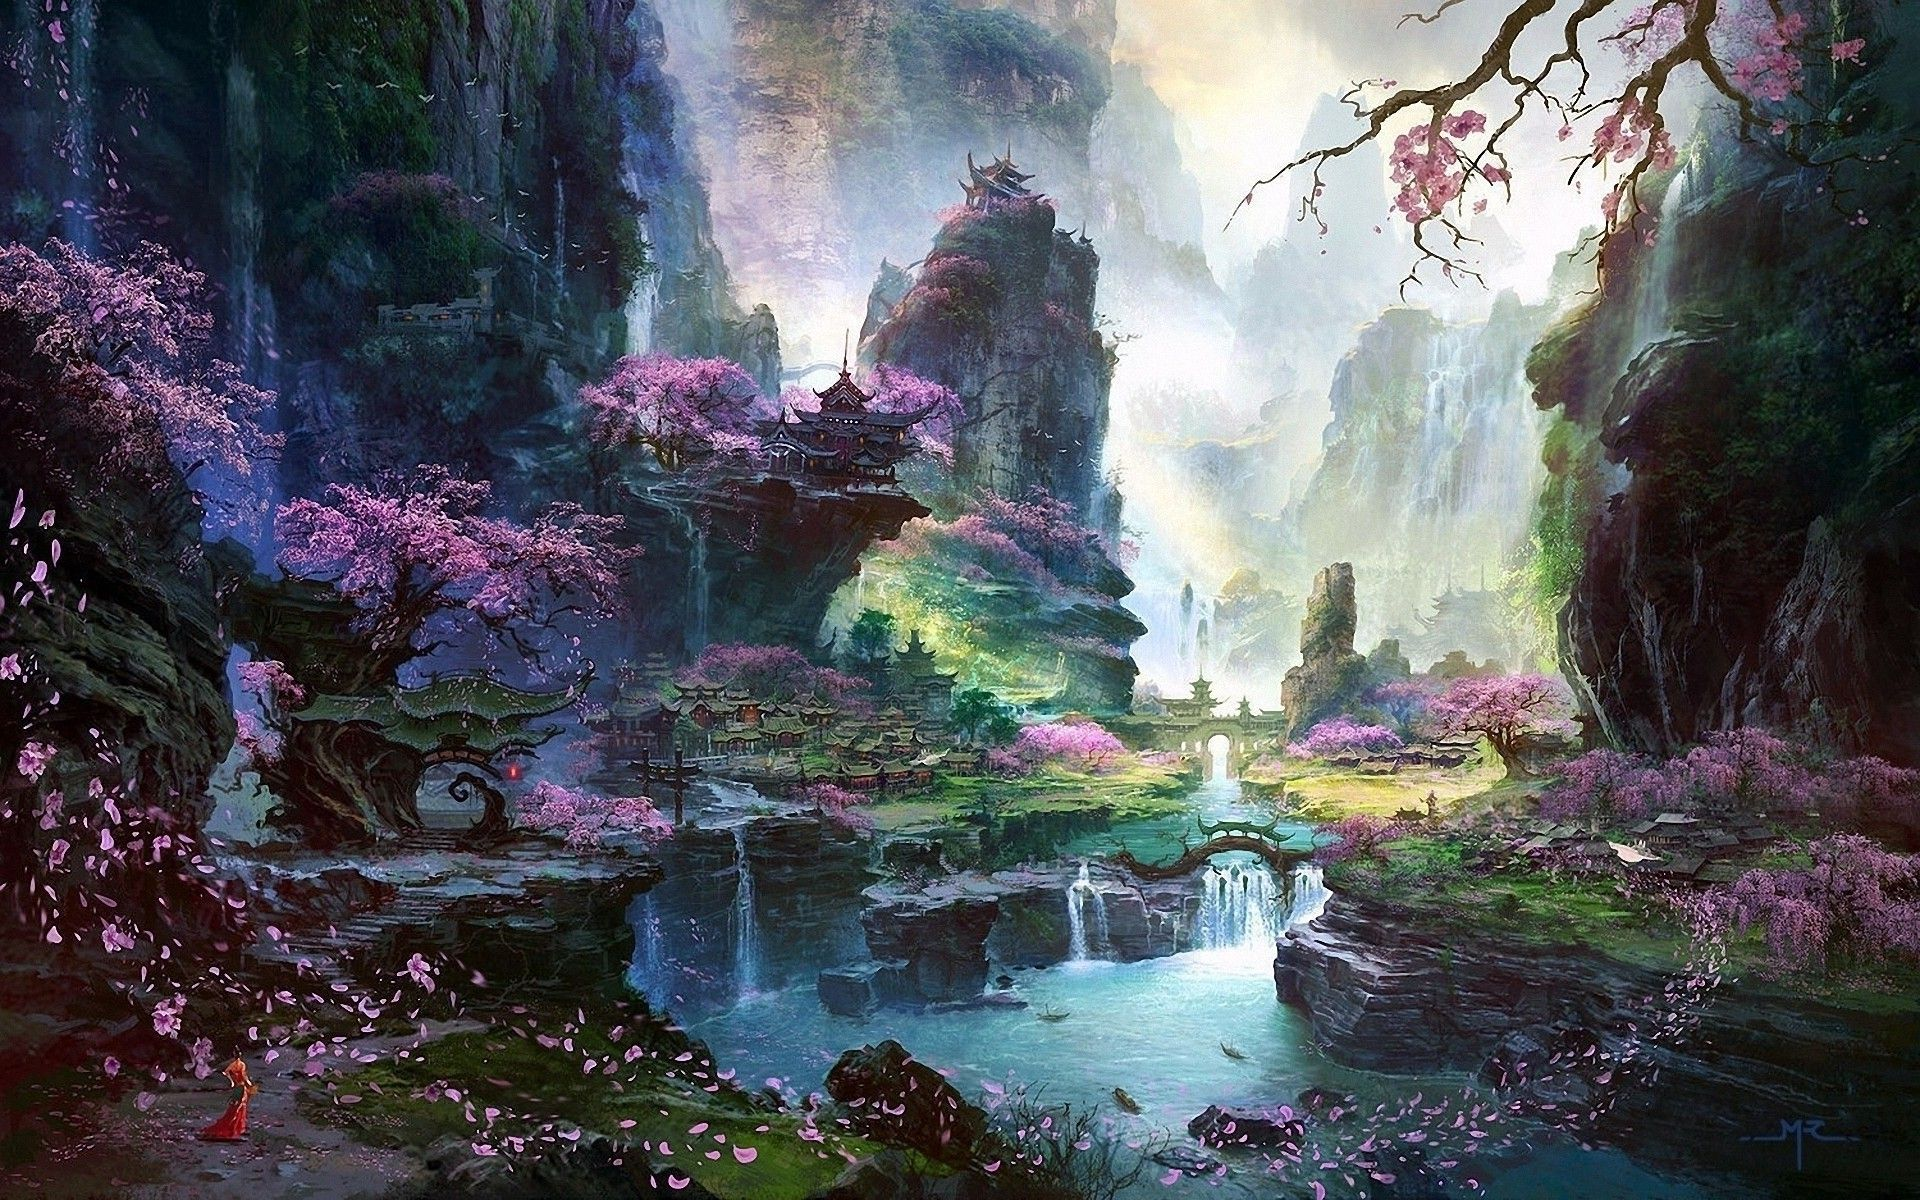 Download Hd Fantasy Art Asian Architecture Cherry Blossom Wallpapers 1920x1200 Chinese Landscape Landscape Wallpaper Waterfall Wallpaper